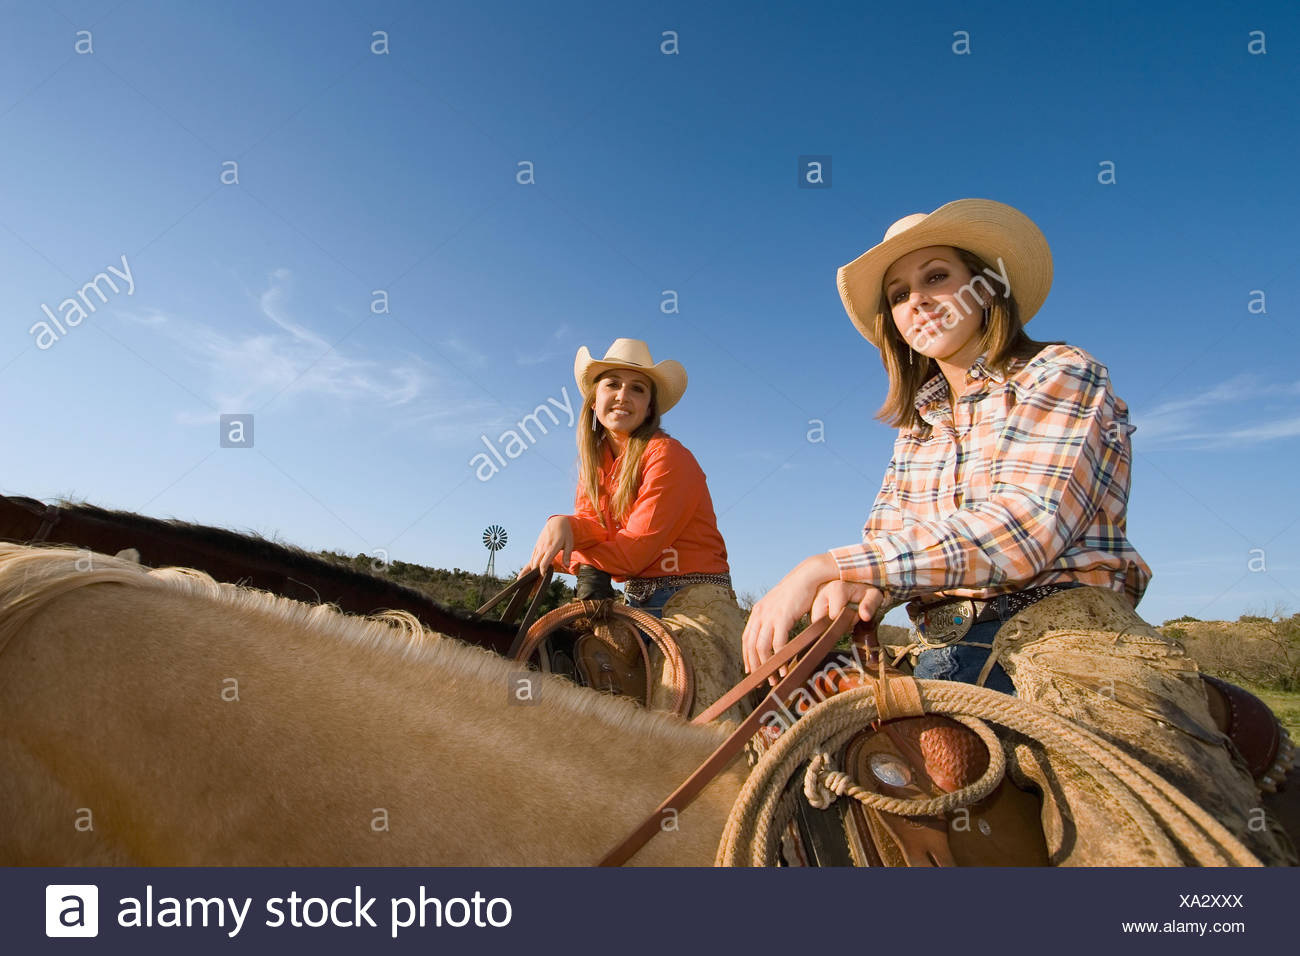 1d5906af28ca4 Agriculture - Young cowgirls smile while sitting on their horses    Childress